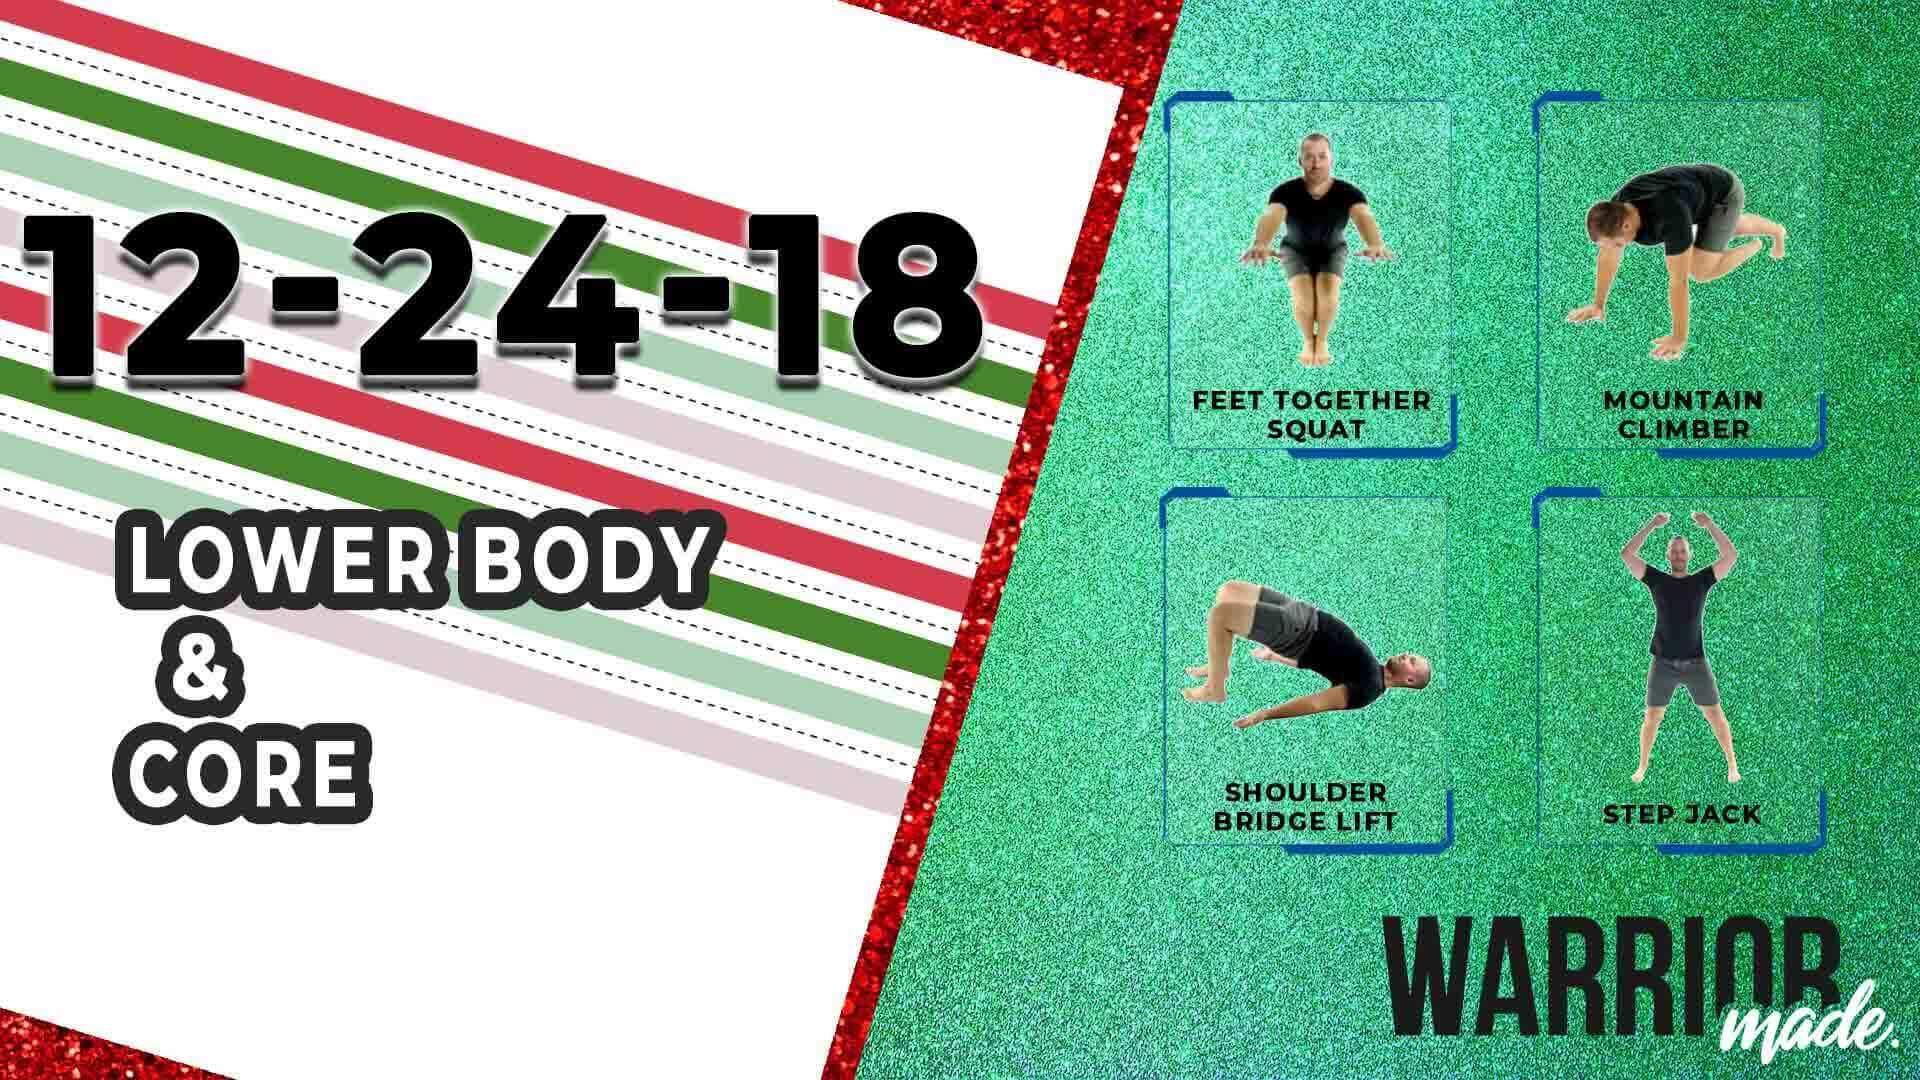 workouts-12-24-18